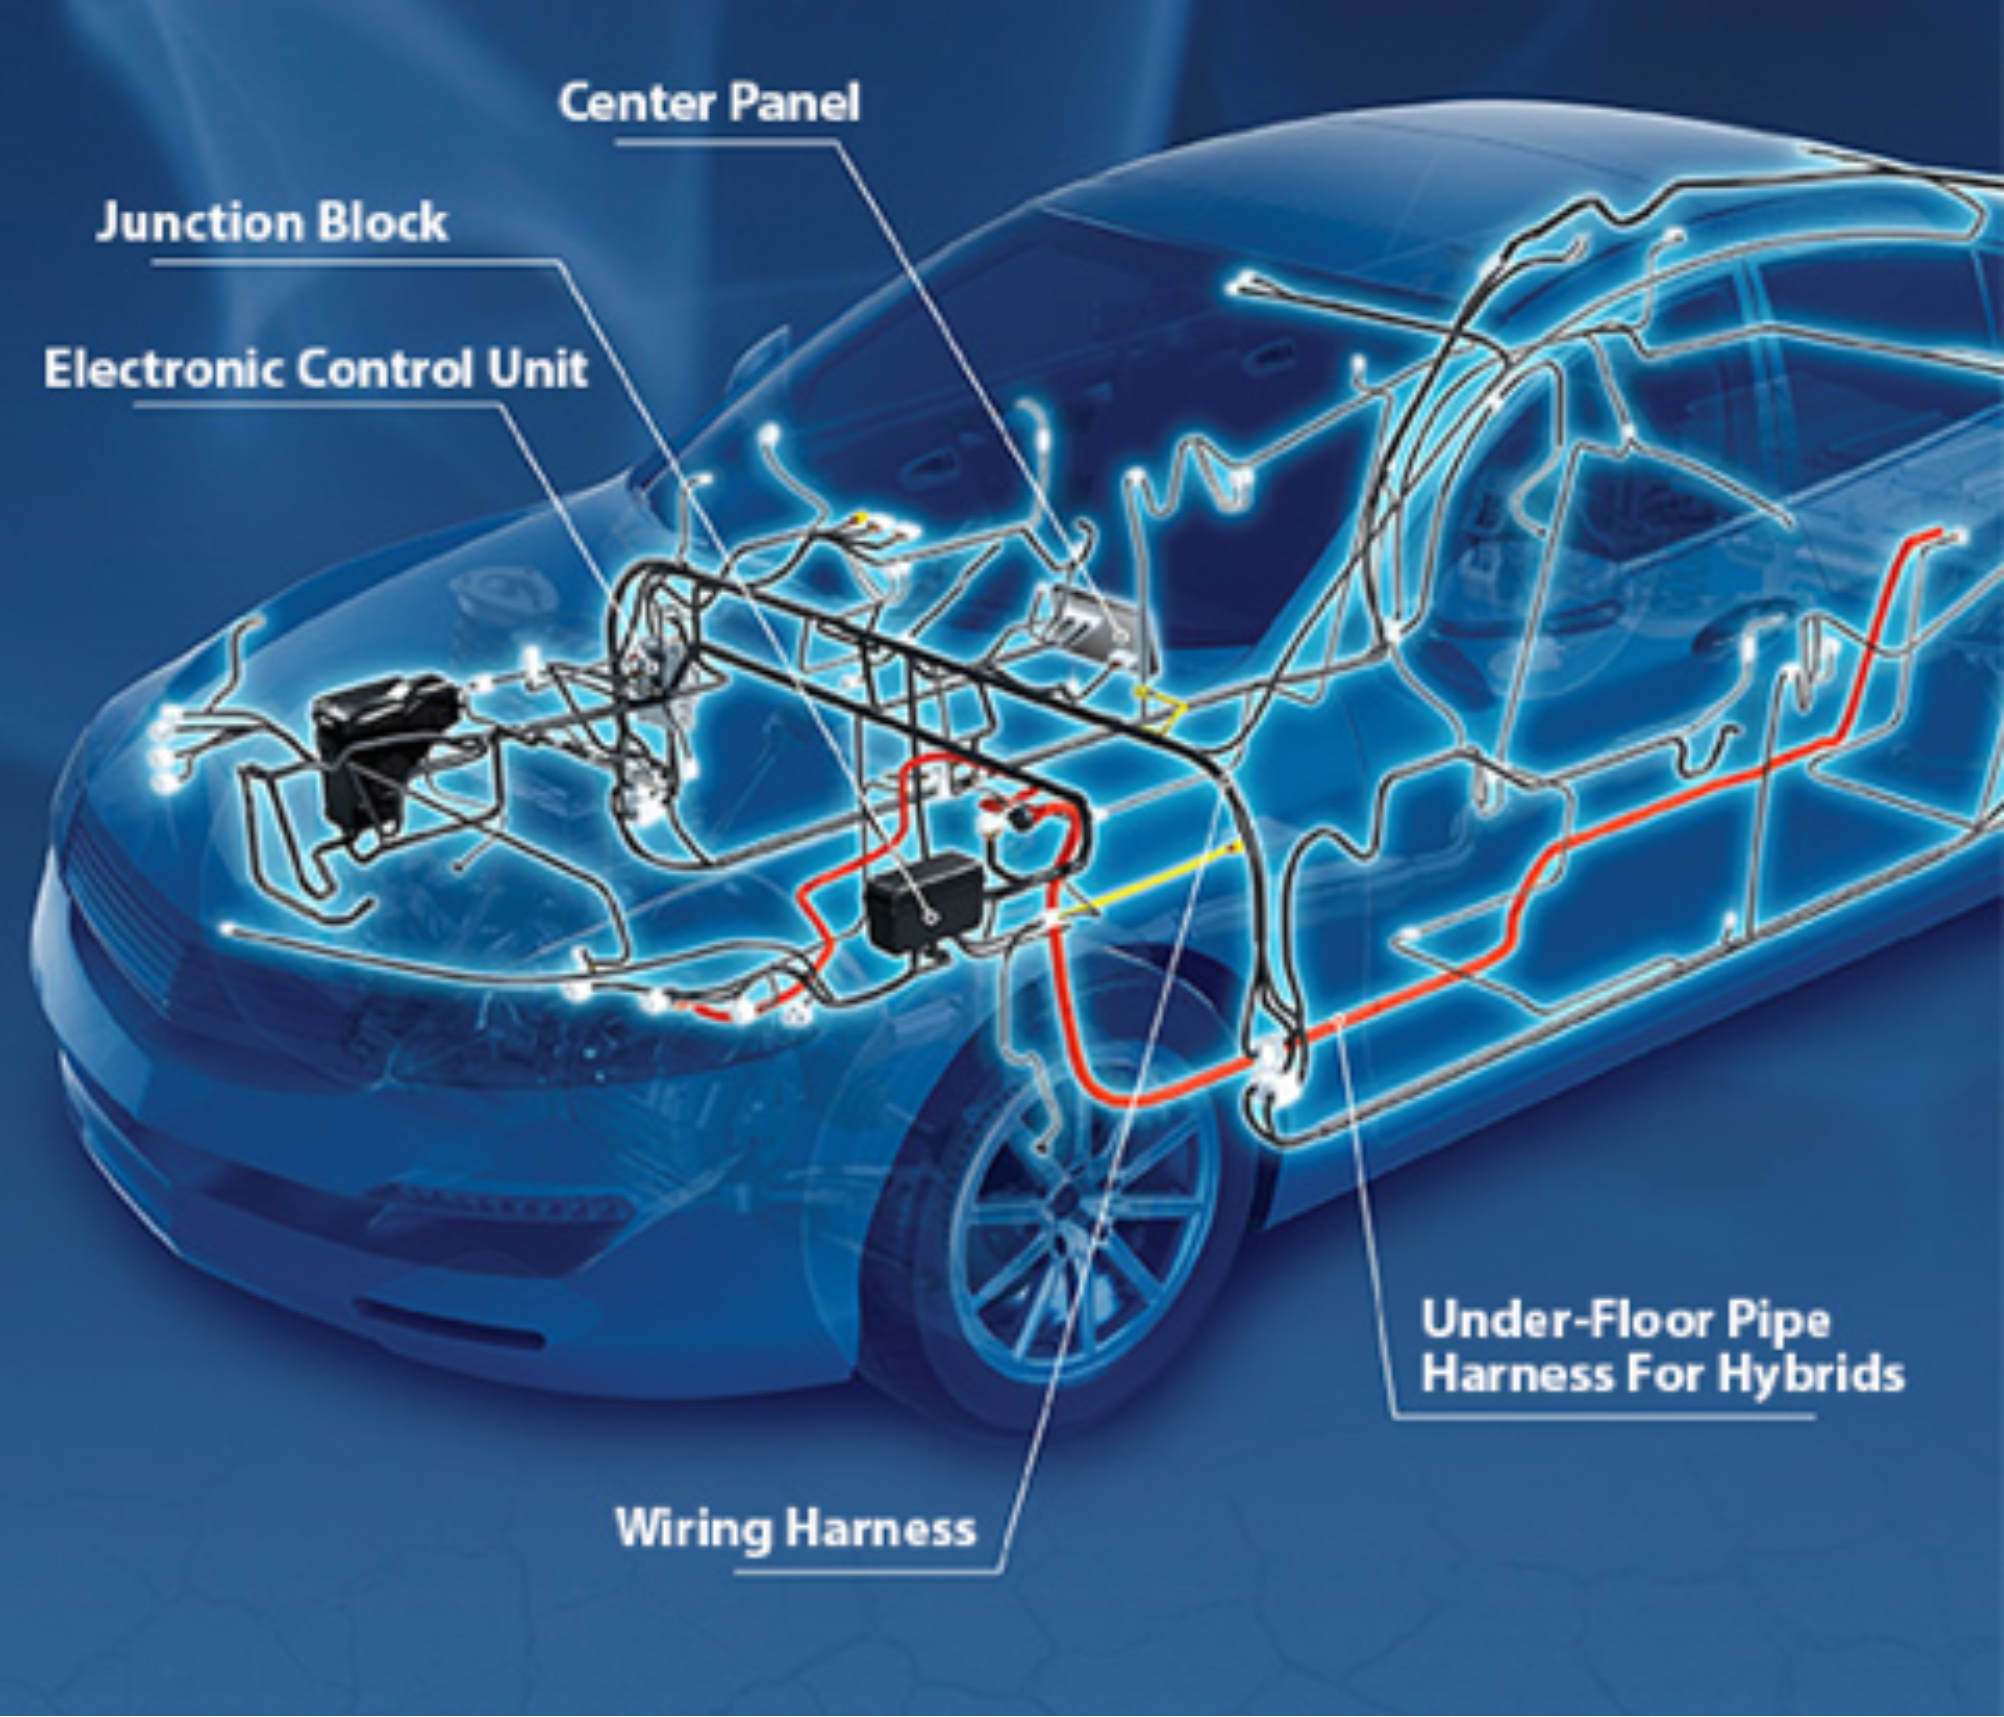 image core business wiring harnesses sews cabind Classic Car Wiring Harness at gsmx.co